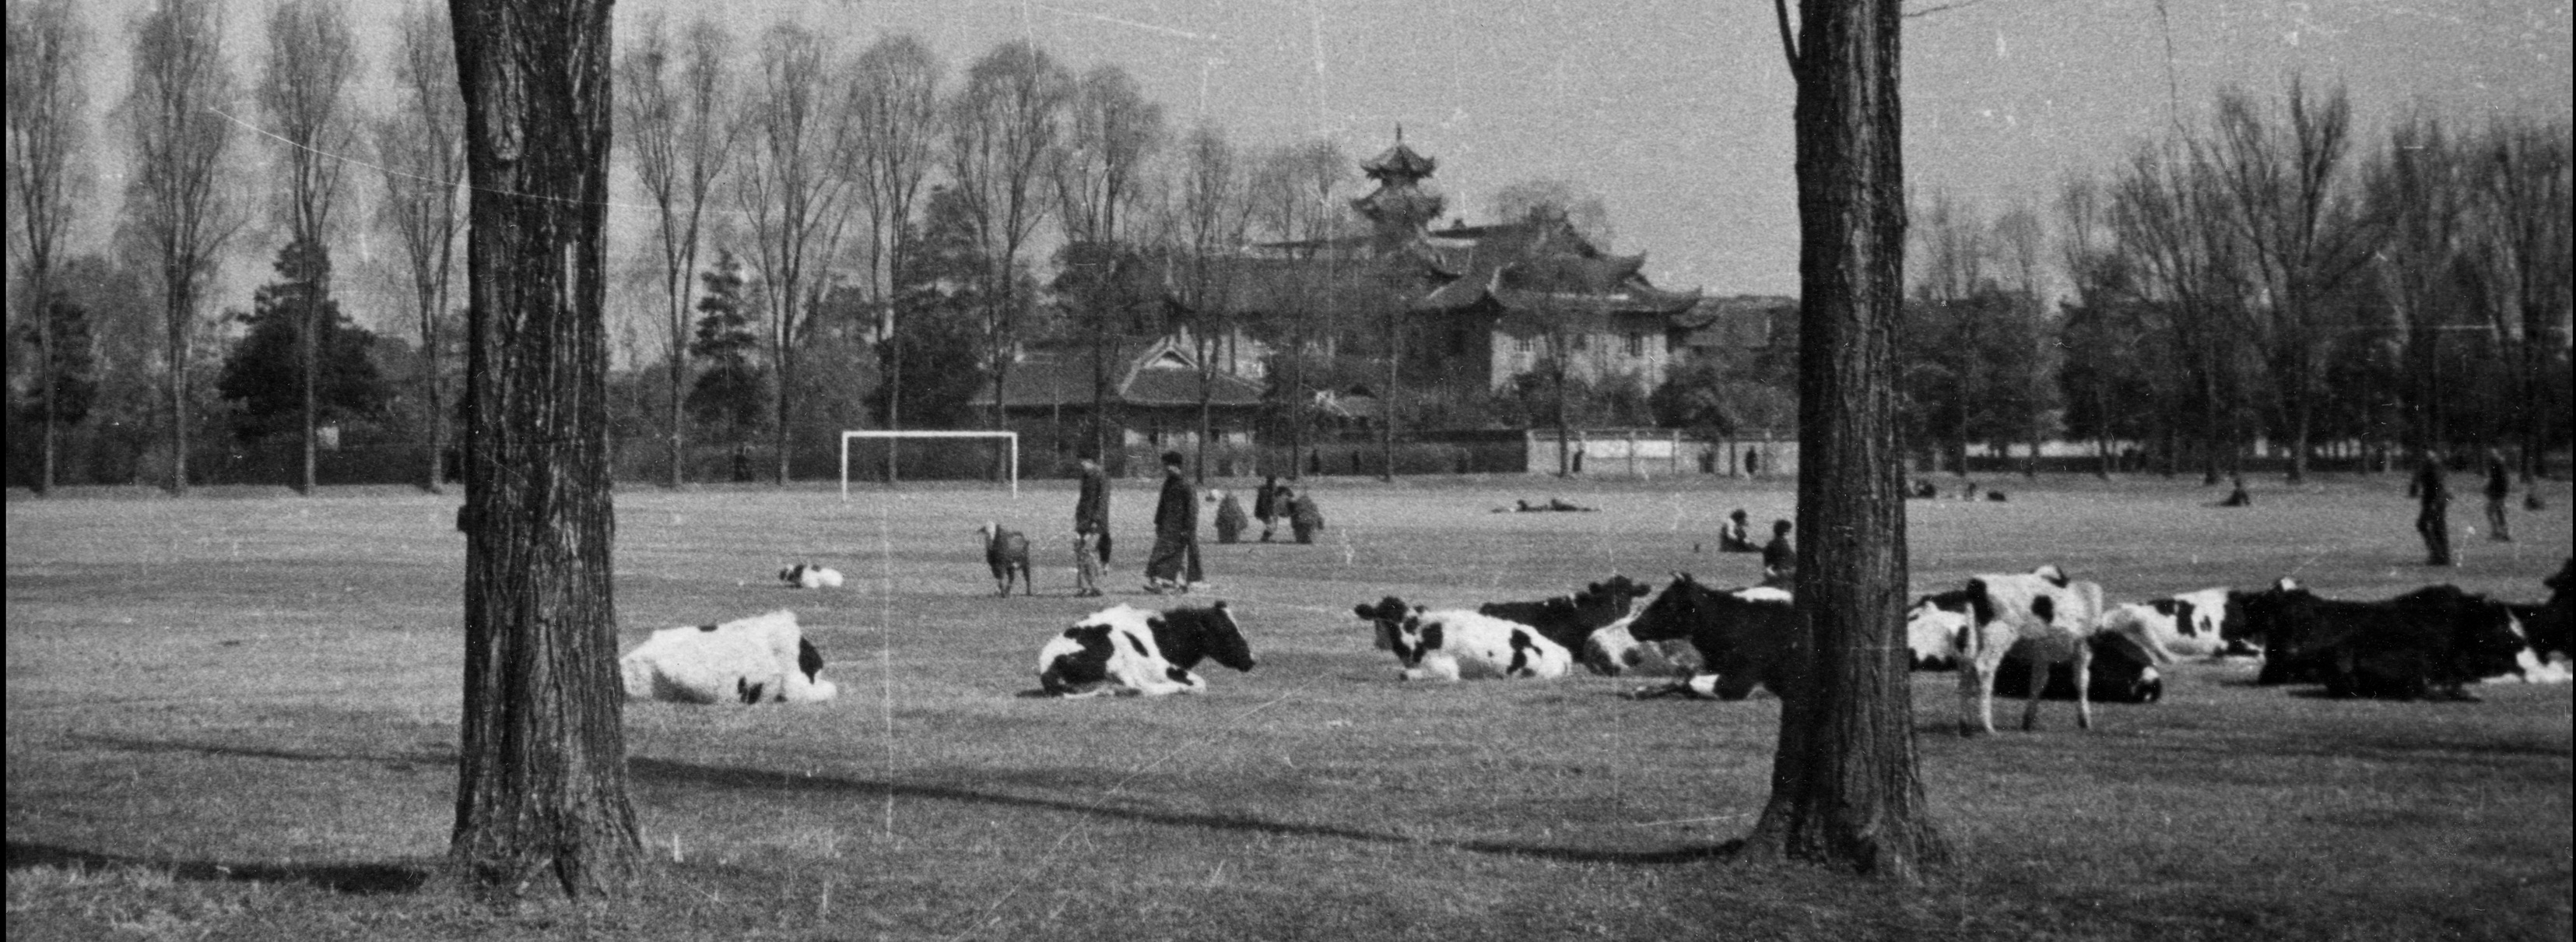 Herd of dairy cattle on campus, football goal posts in middle distance, Hart college in distance